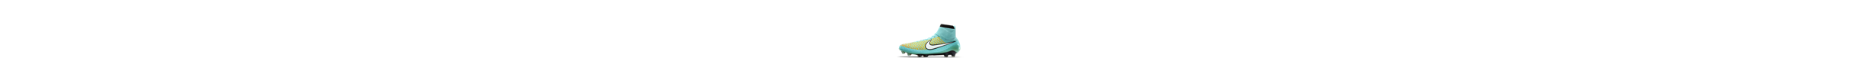 magista footy news